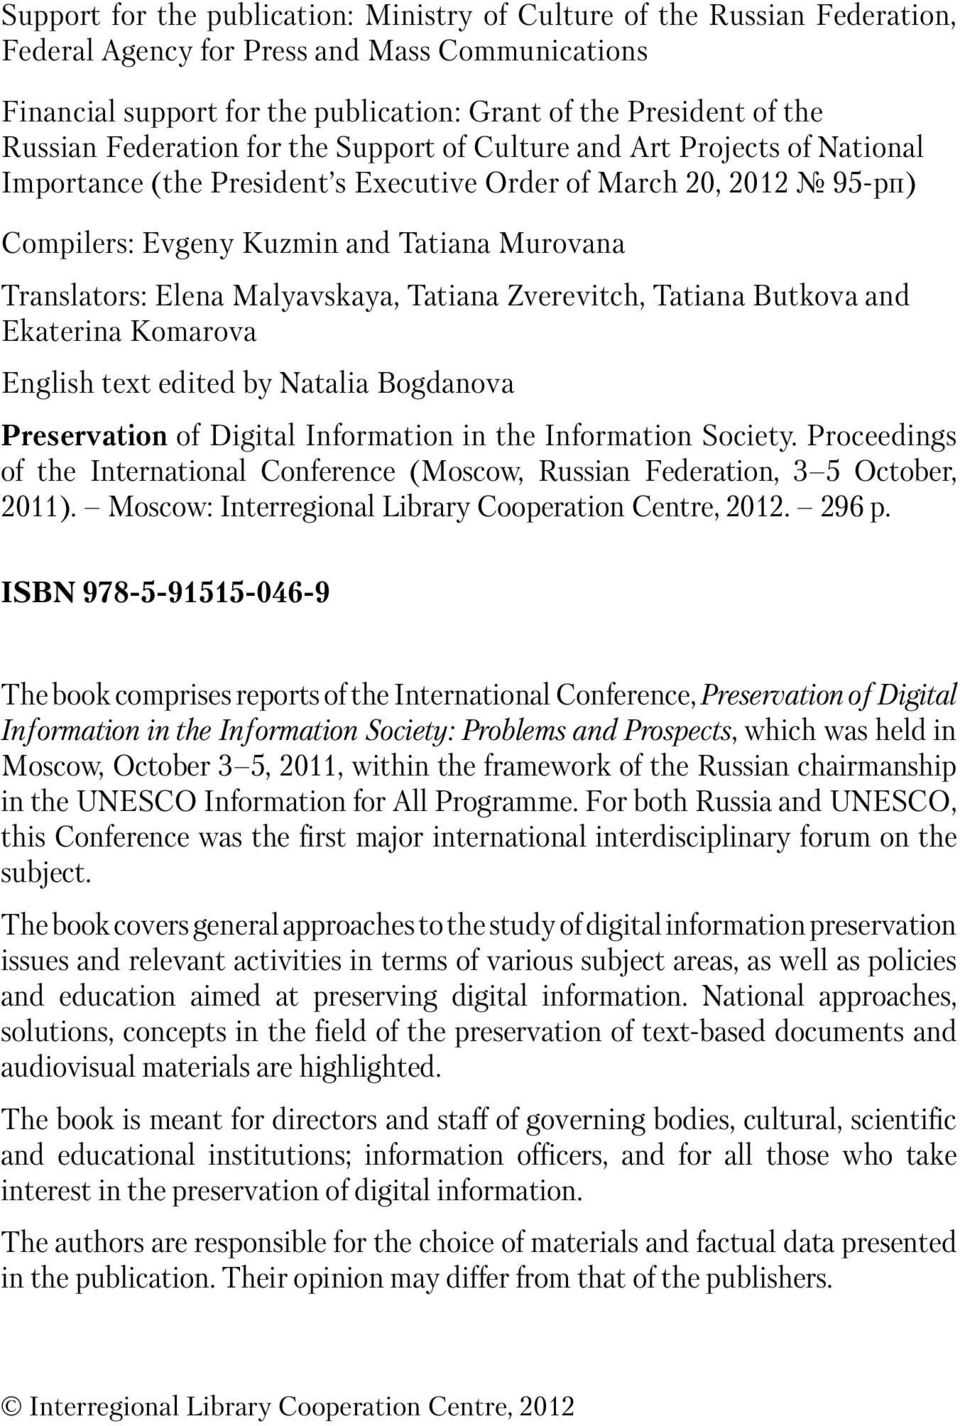 Translators: Elena Malyavskaya, Tatiana Zverevitch, Tatiana Butkova and Ekaterina Komarova English text edited by Natalia Bogdanova Preservation of Digital Information in the Information Society.